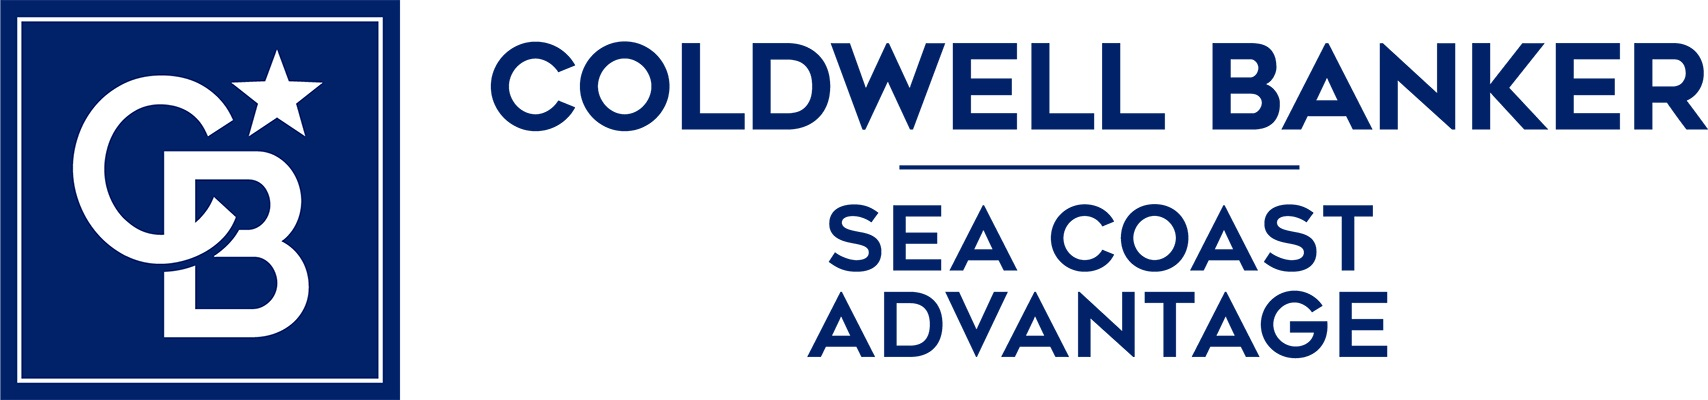 James Hill - Coldwell Banker Sea Coast Advantage Realty Logo